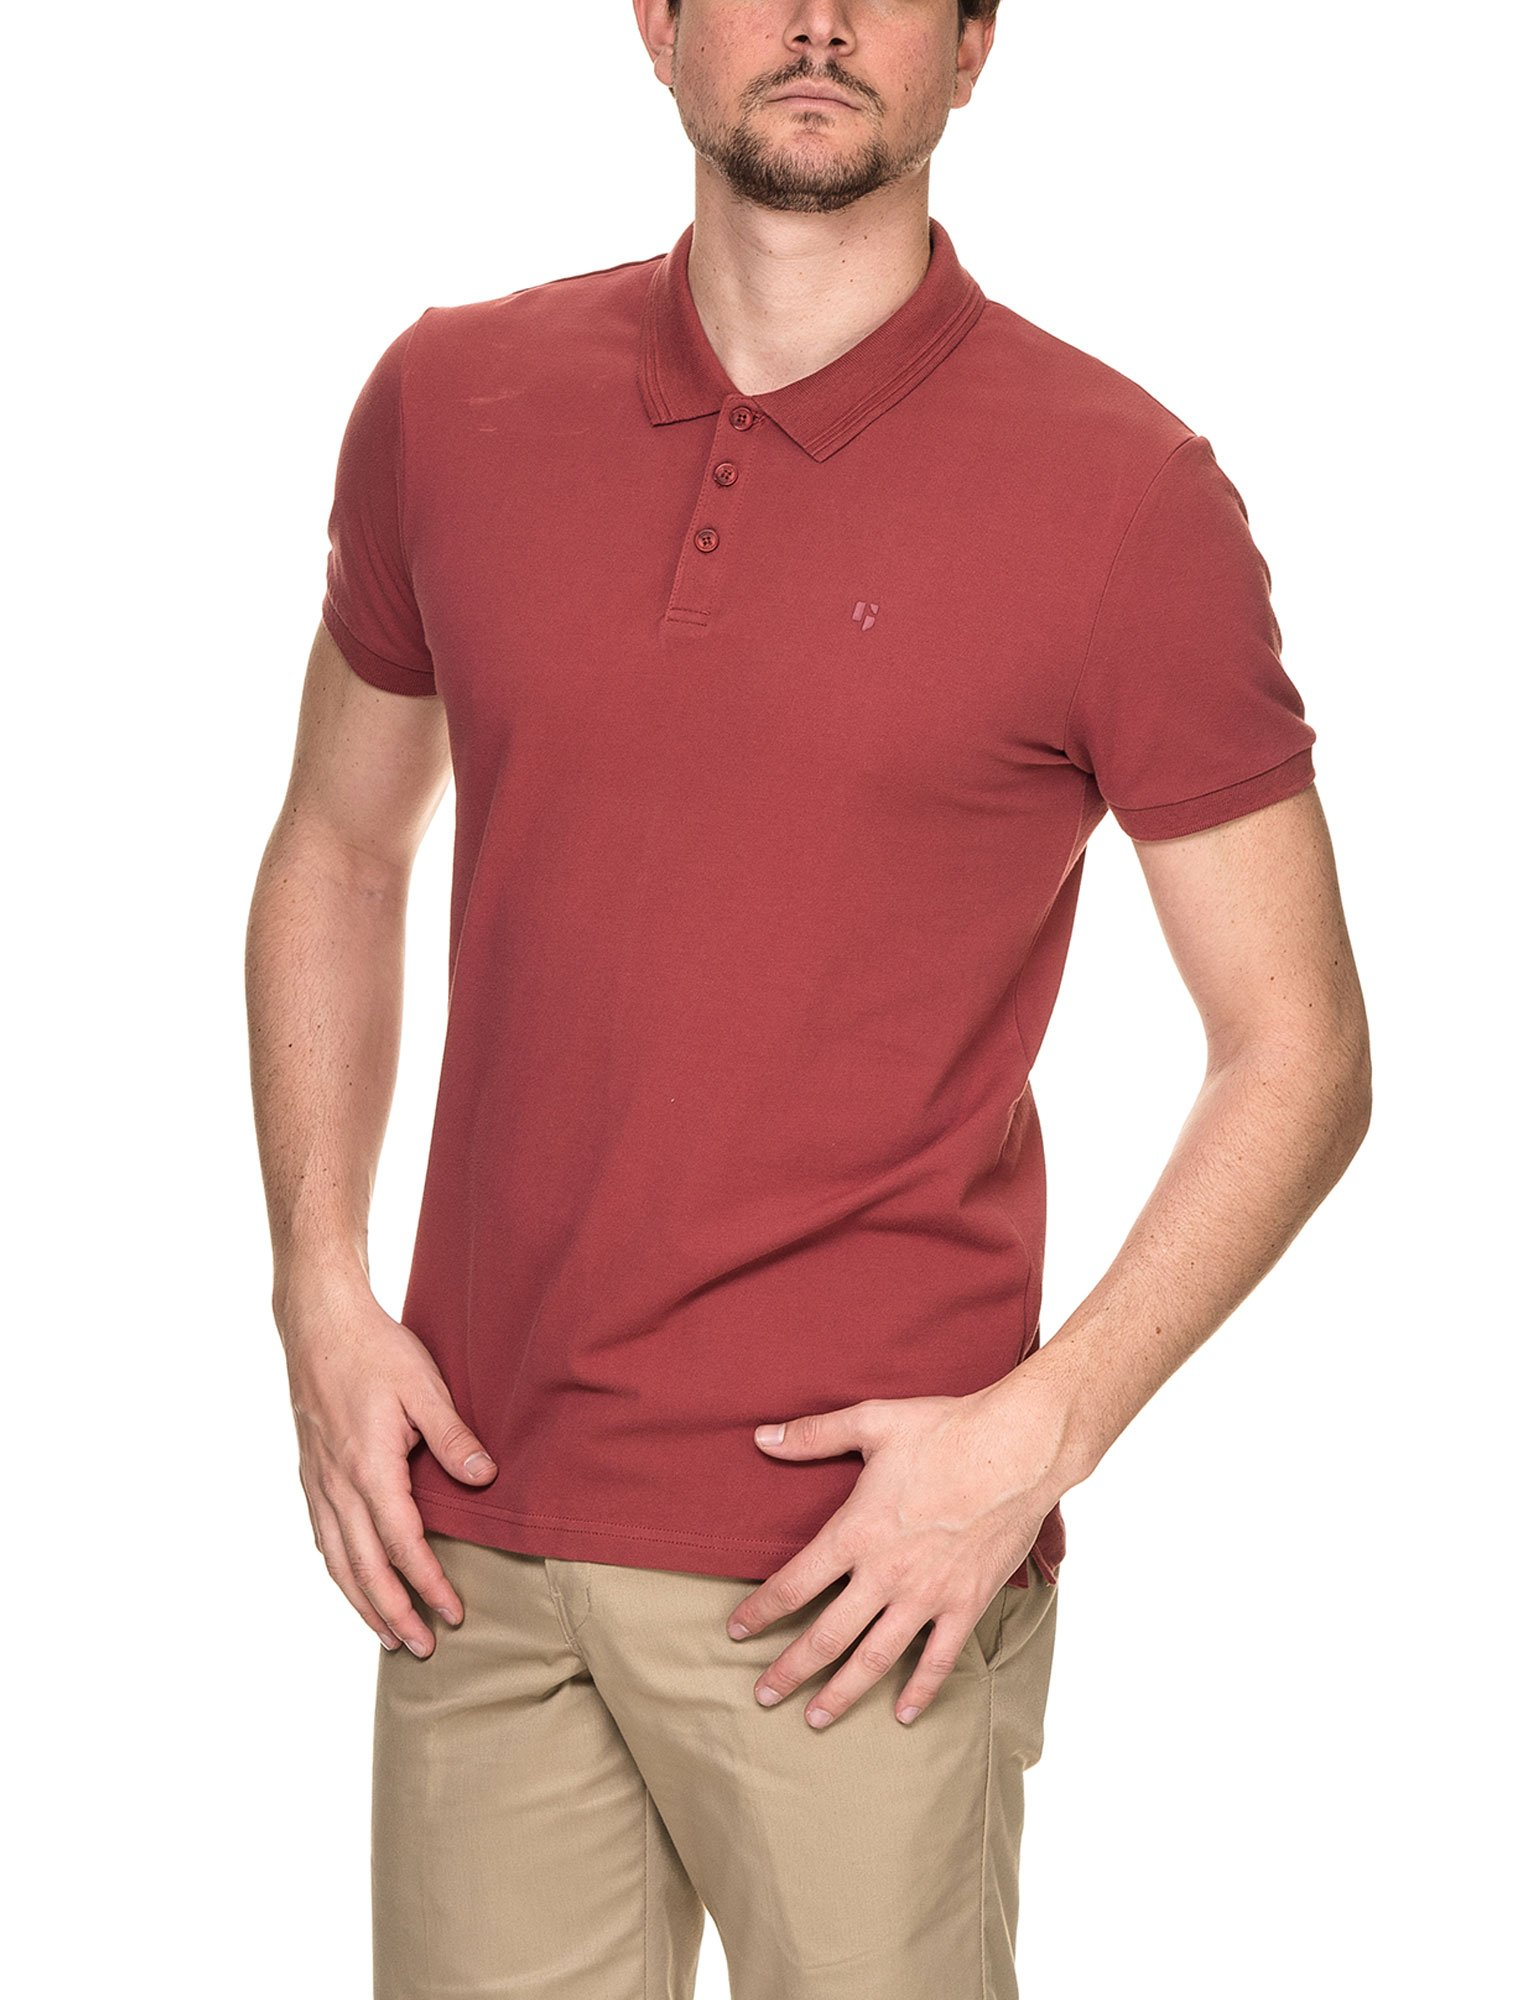 GARCIA JEANS Men's Men's Polo T-Shirt in Red in Size L Red